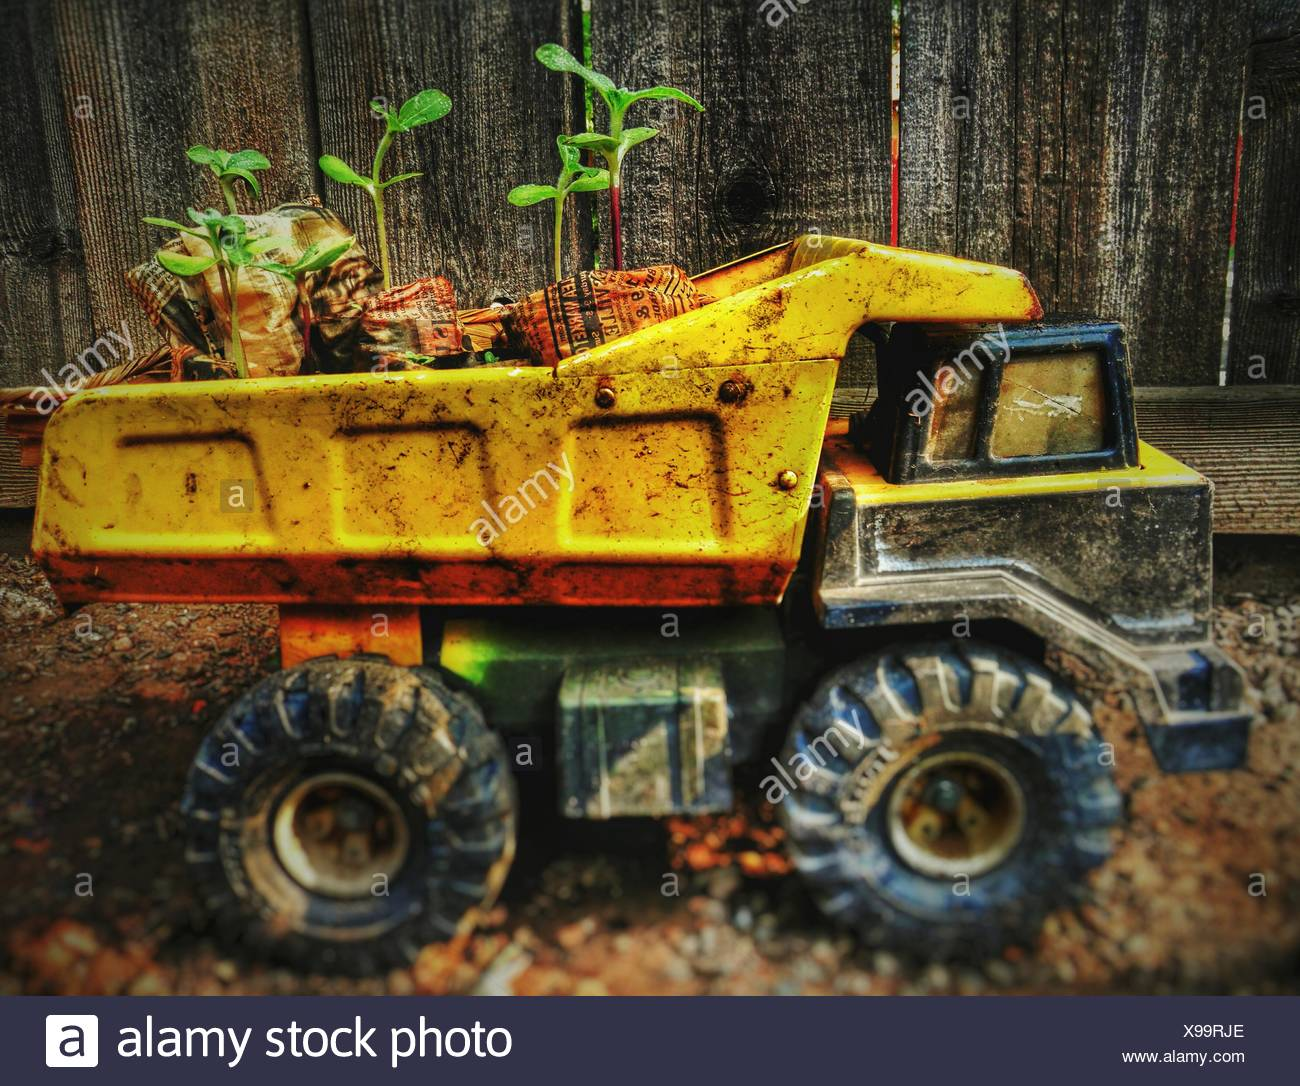 Close-Up Of Messy Toy Truck Against Wooden Fence - Stock Image